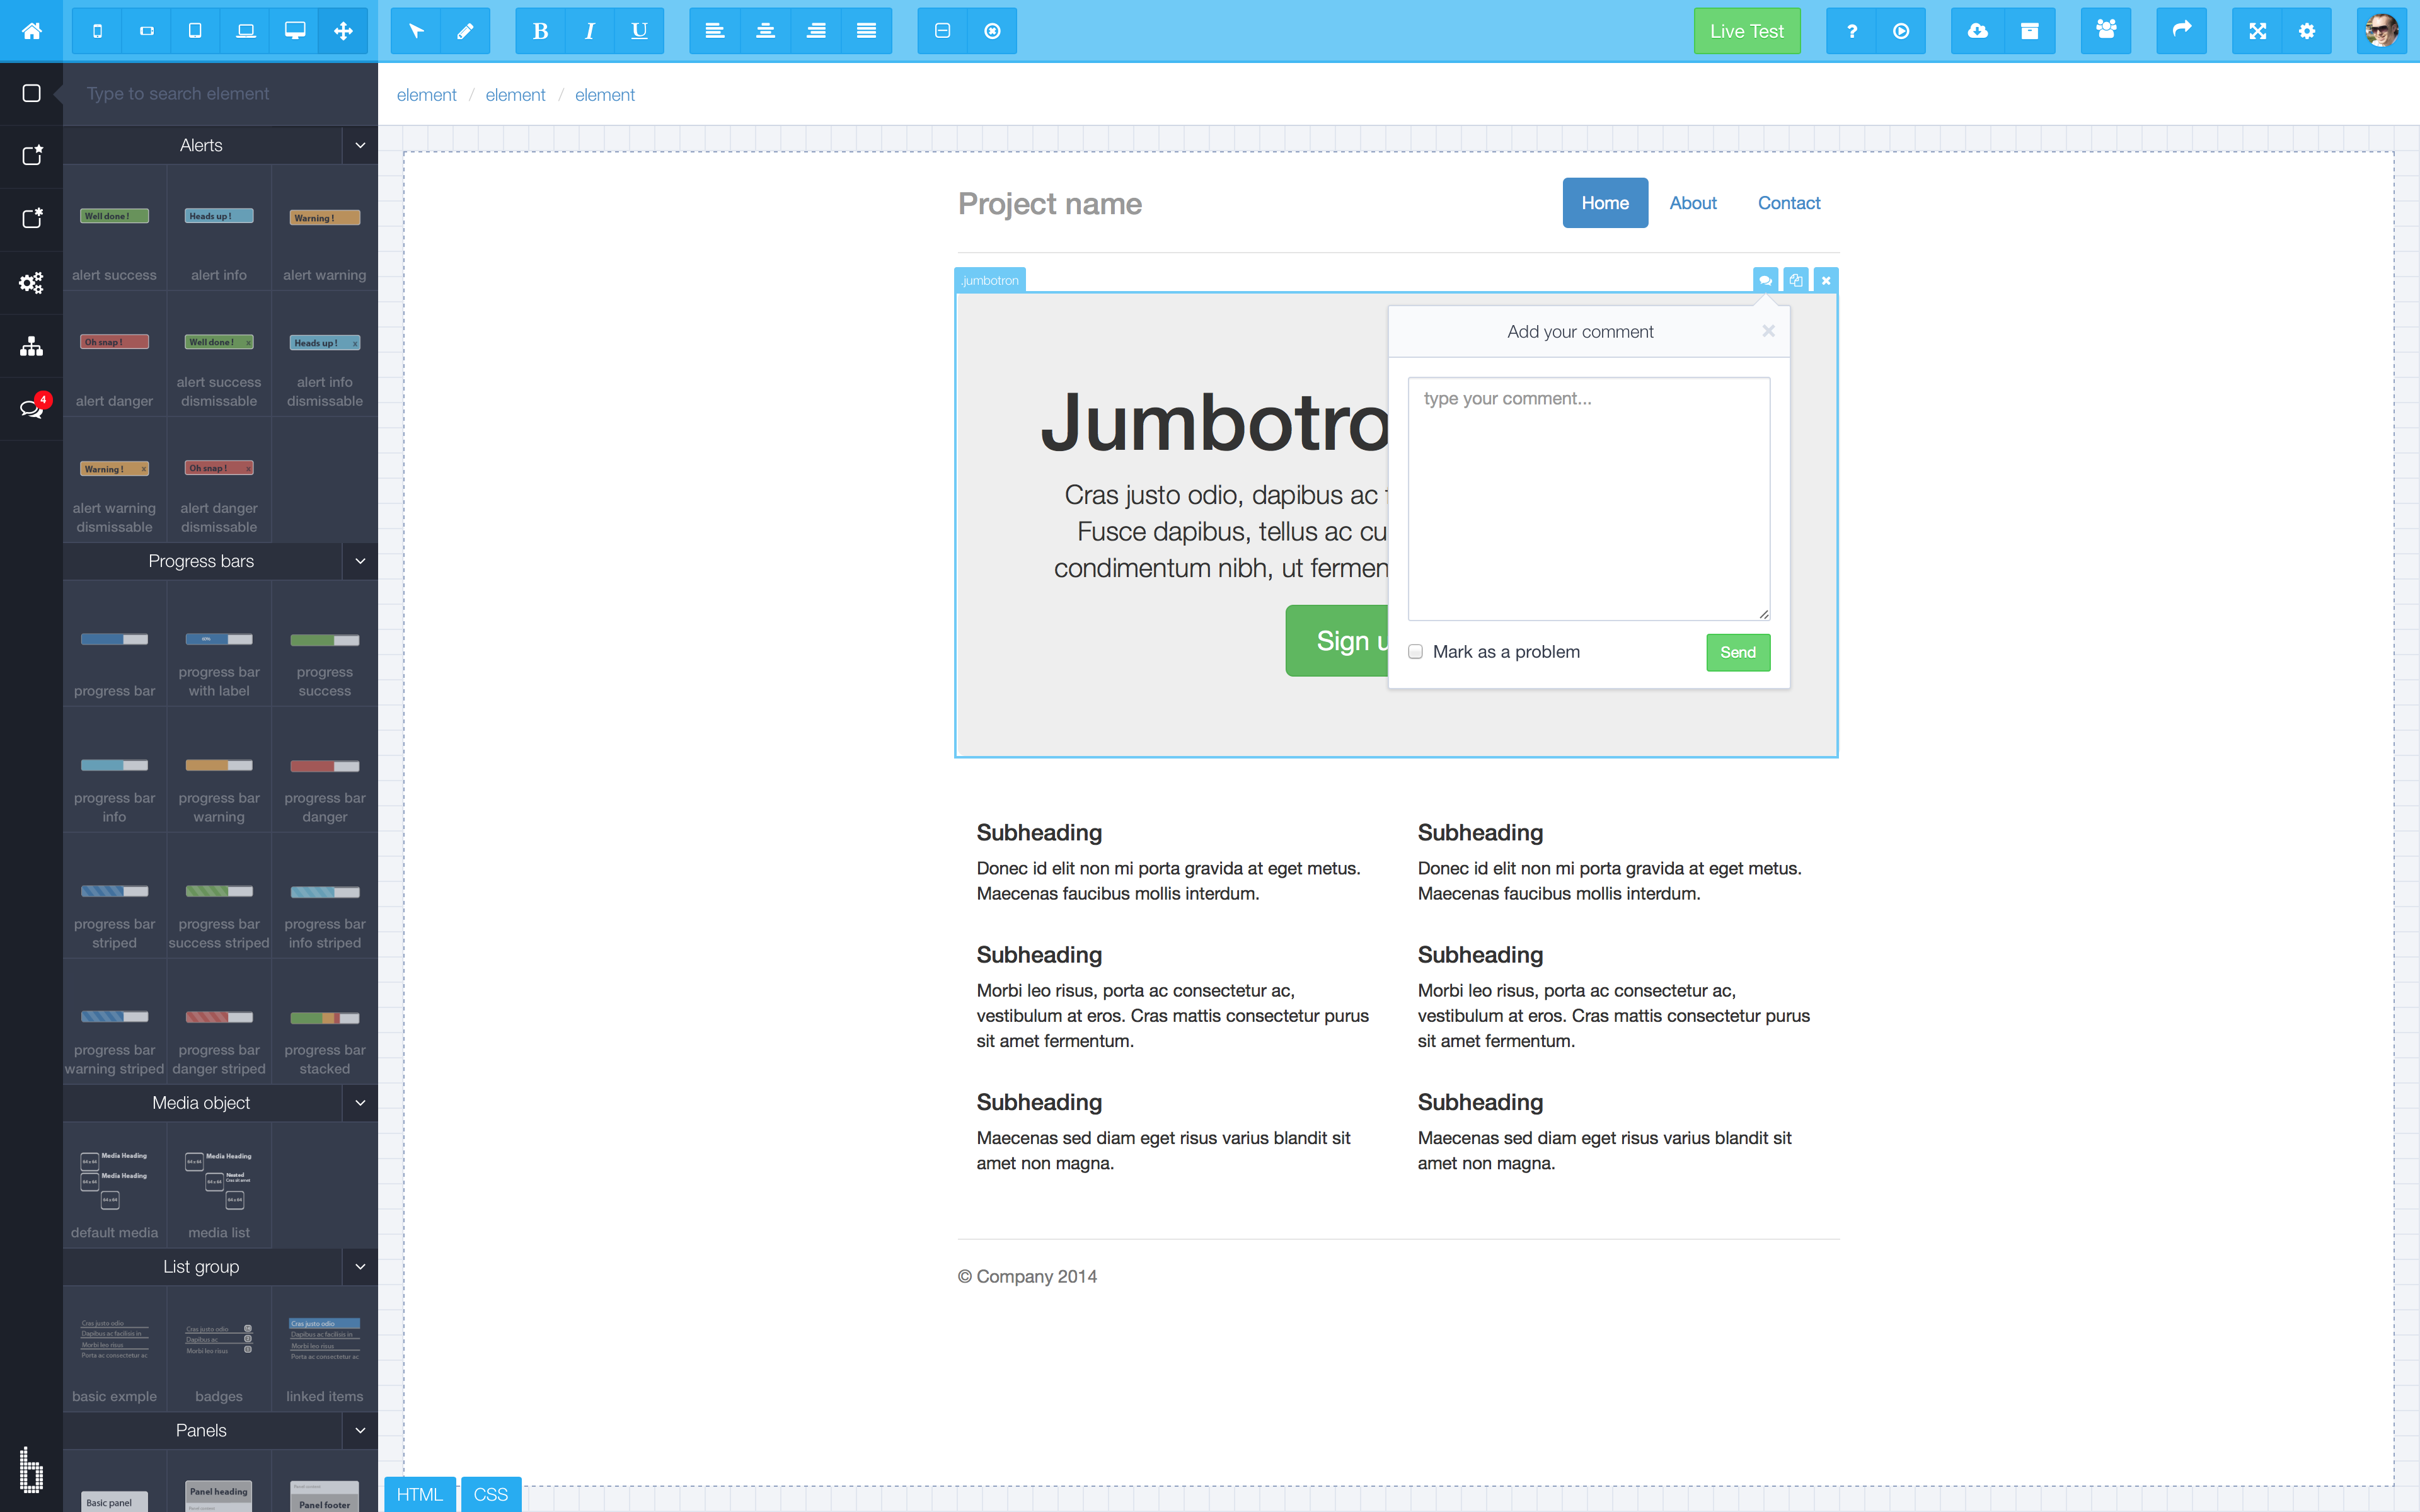 How To Use Bootstrap Templates | What Tools Do People Use To Build Bootstrap Templates Quora